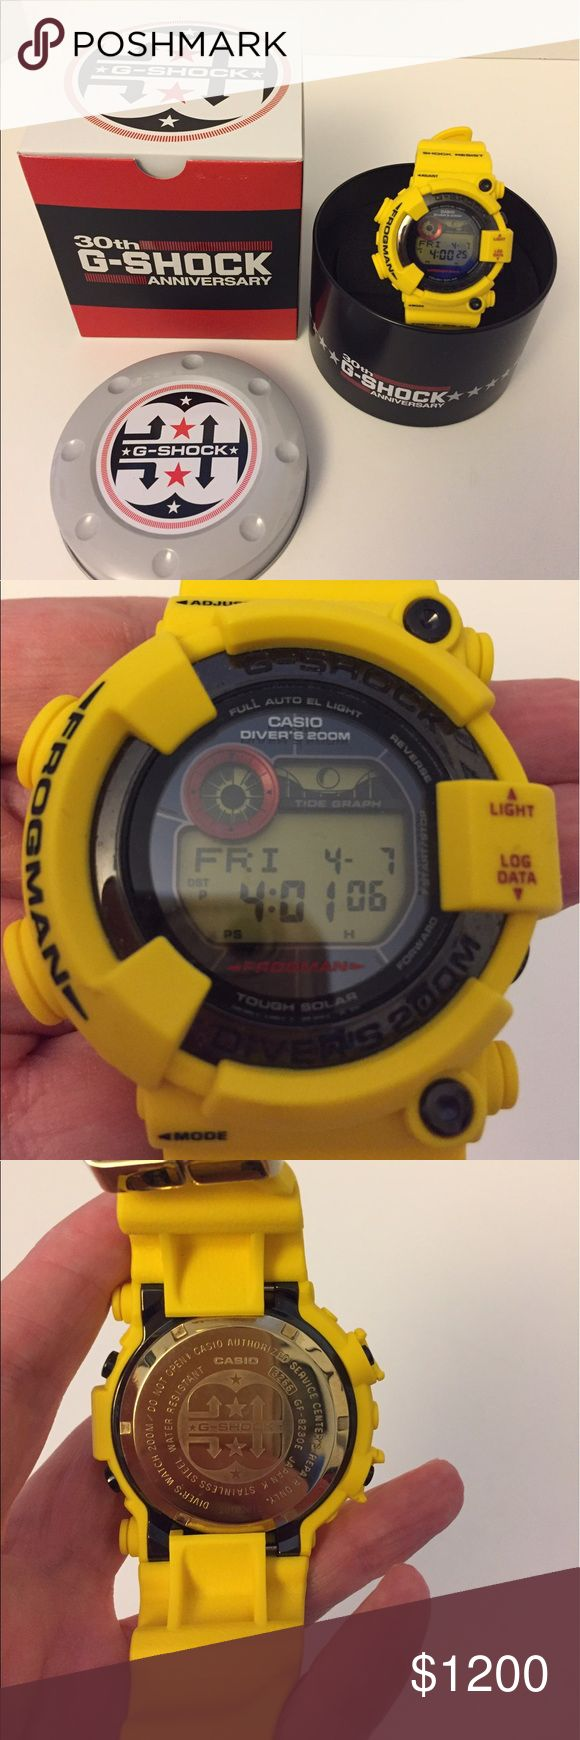 G-Shock Frogman 30th Anniversary Watch G-Shock Frogman GF-8230E-9CR 30th Anniversary Lightning Yellow Limited watch that comes with tough solar, 200m waterproof for diving, Moon data, and Tide graph. Mint Condition, No Scratches! G-Shock Accessories Watches